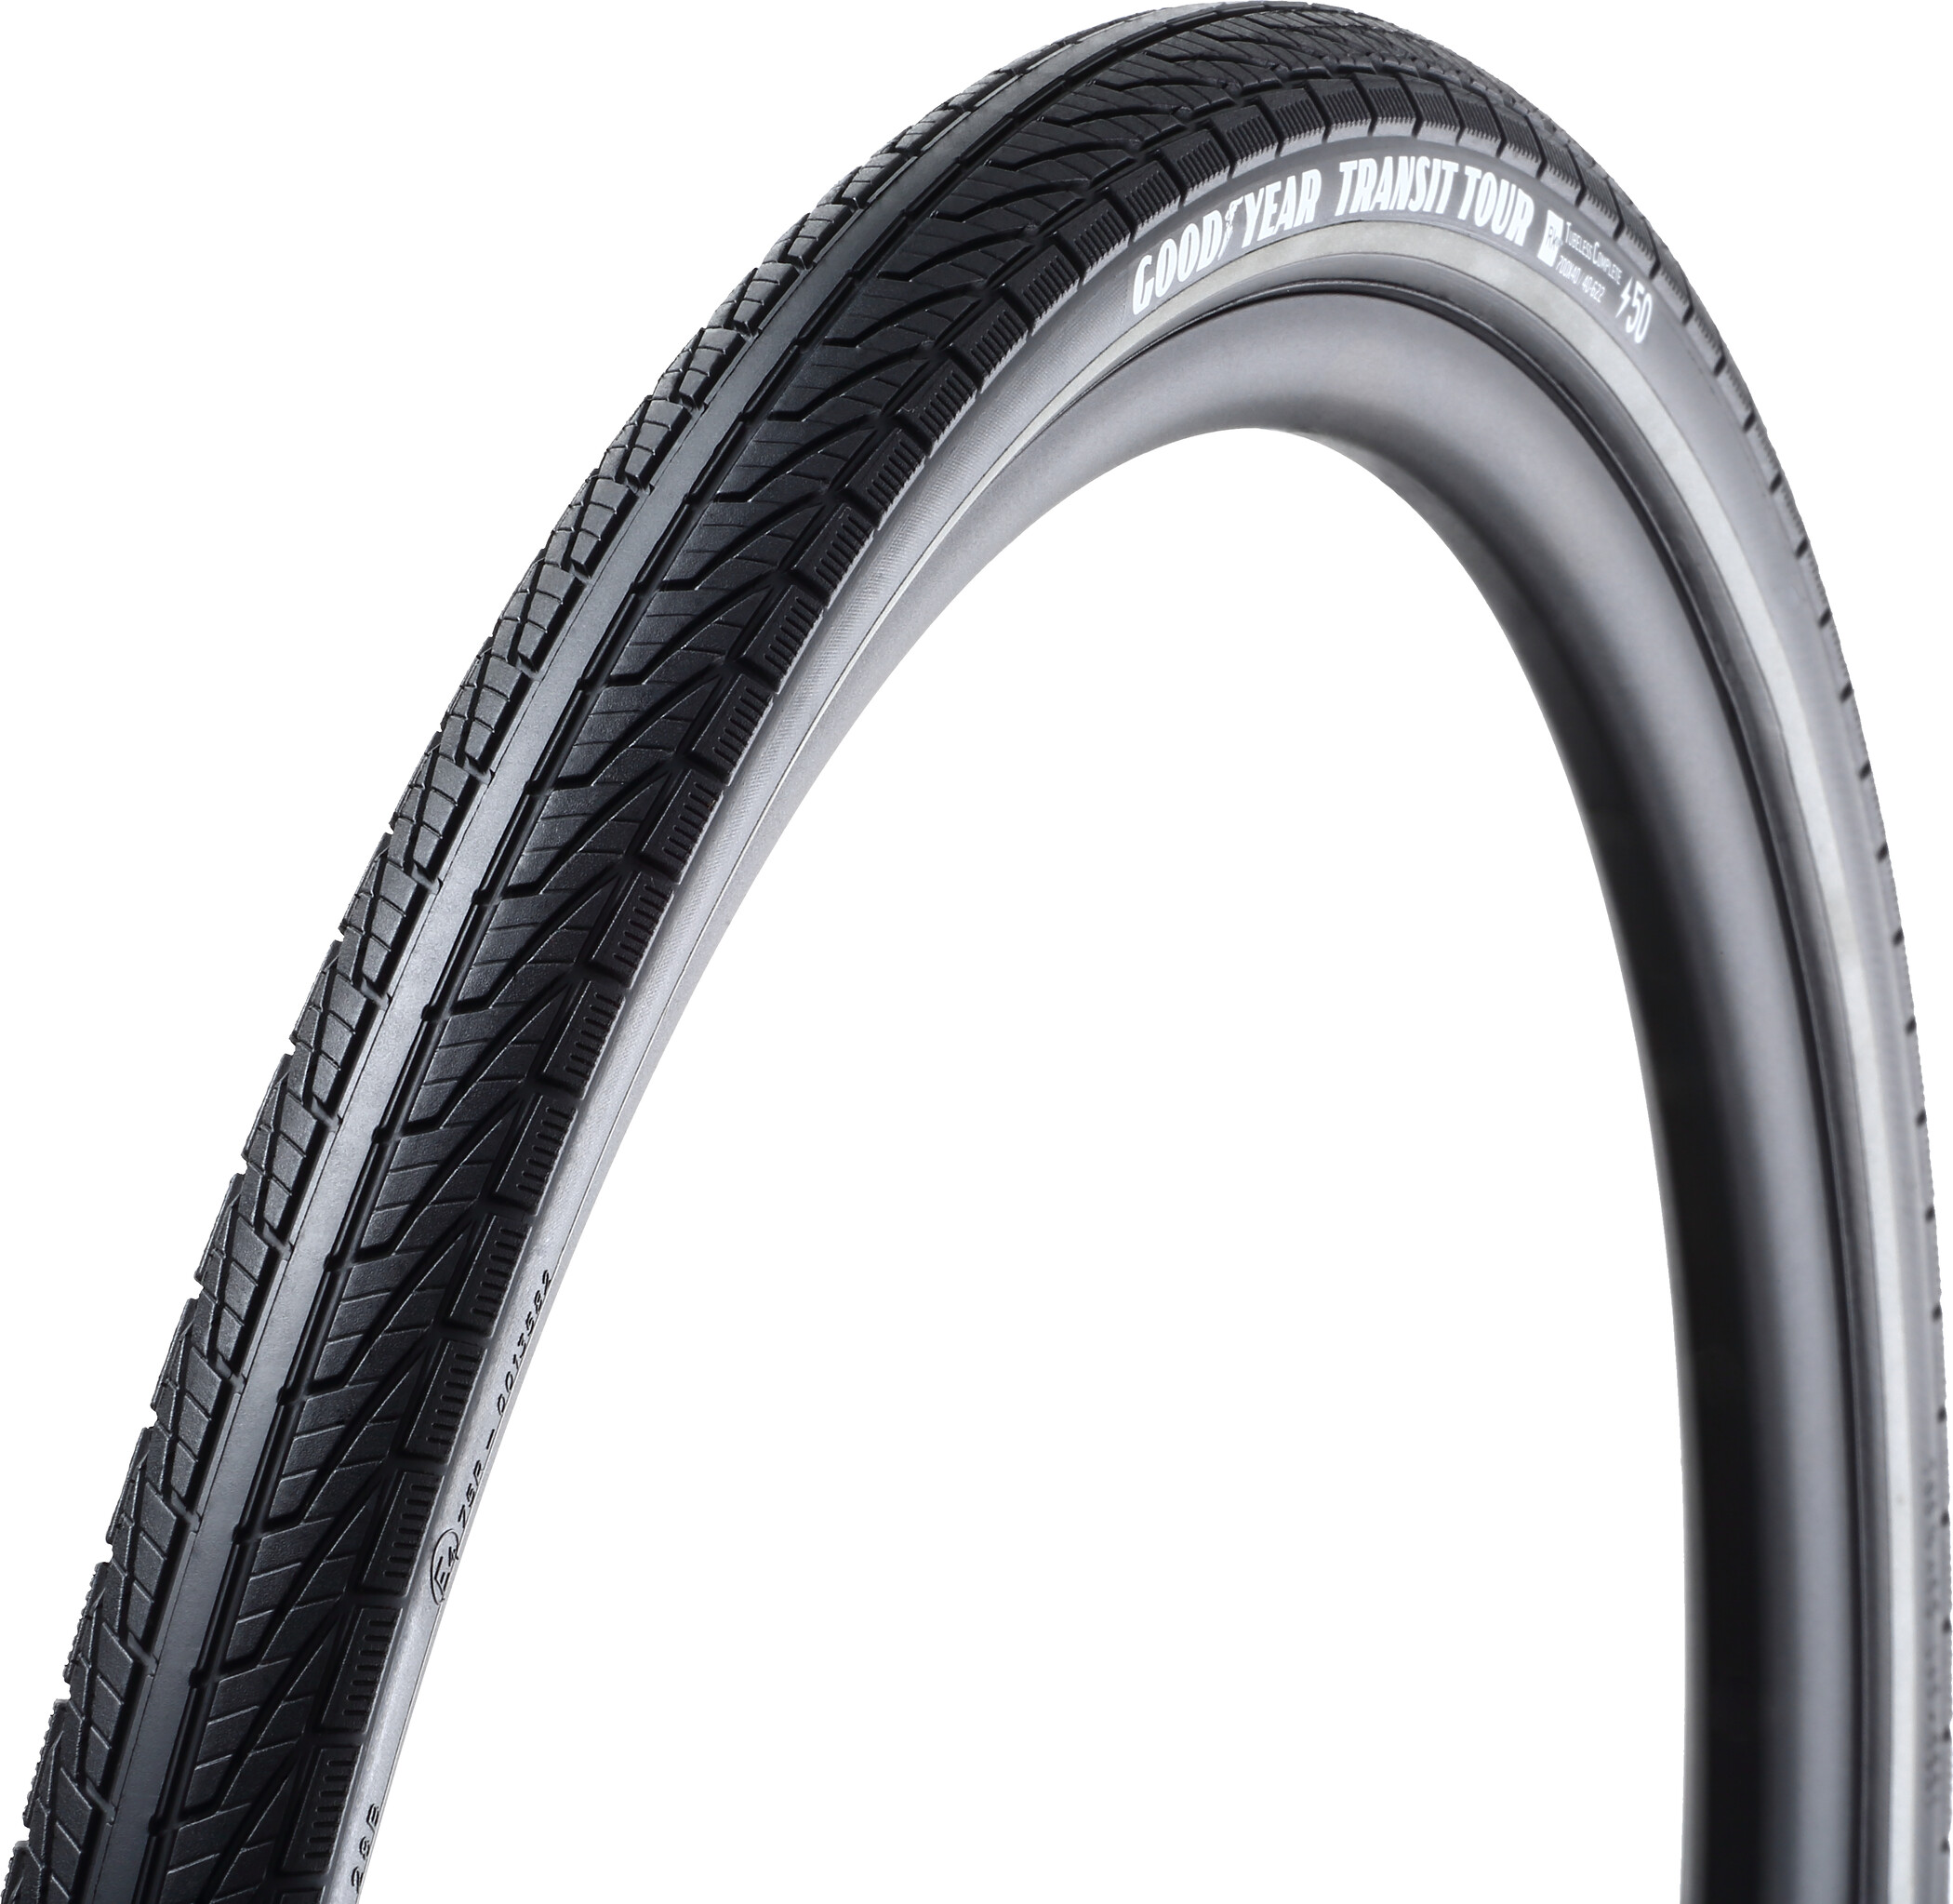 Goodyear Transit Tour Foldedæk 40-622 Tubeless Complete Dynamic Silica4 e50, black reflected (2019)   Tyres